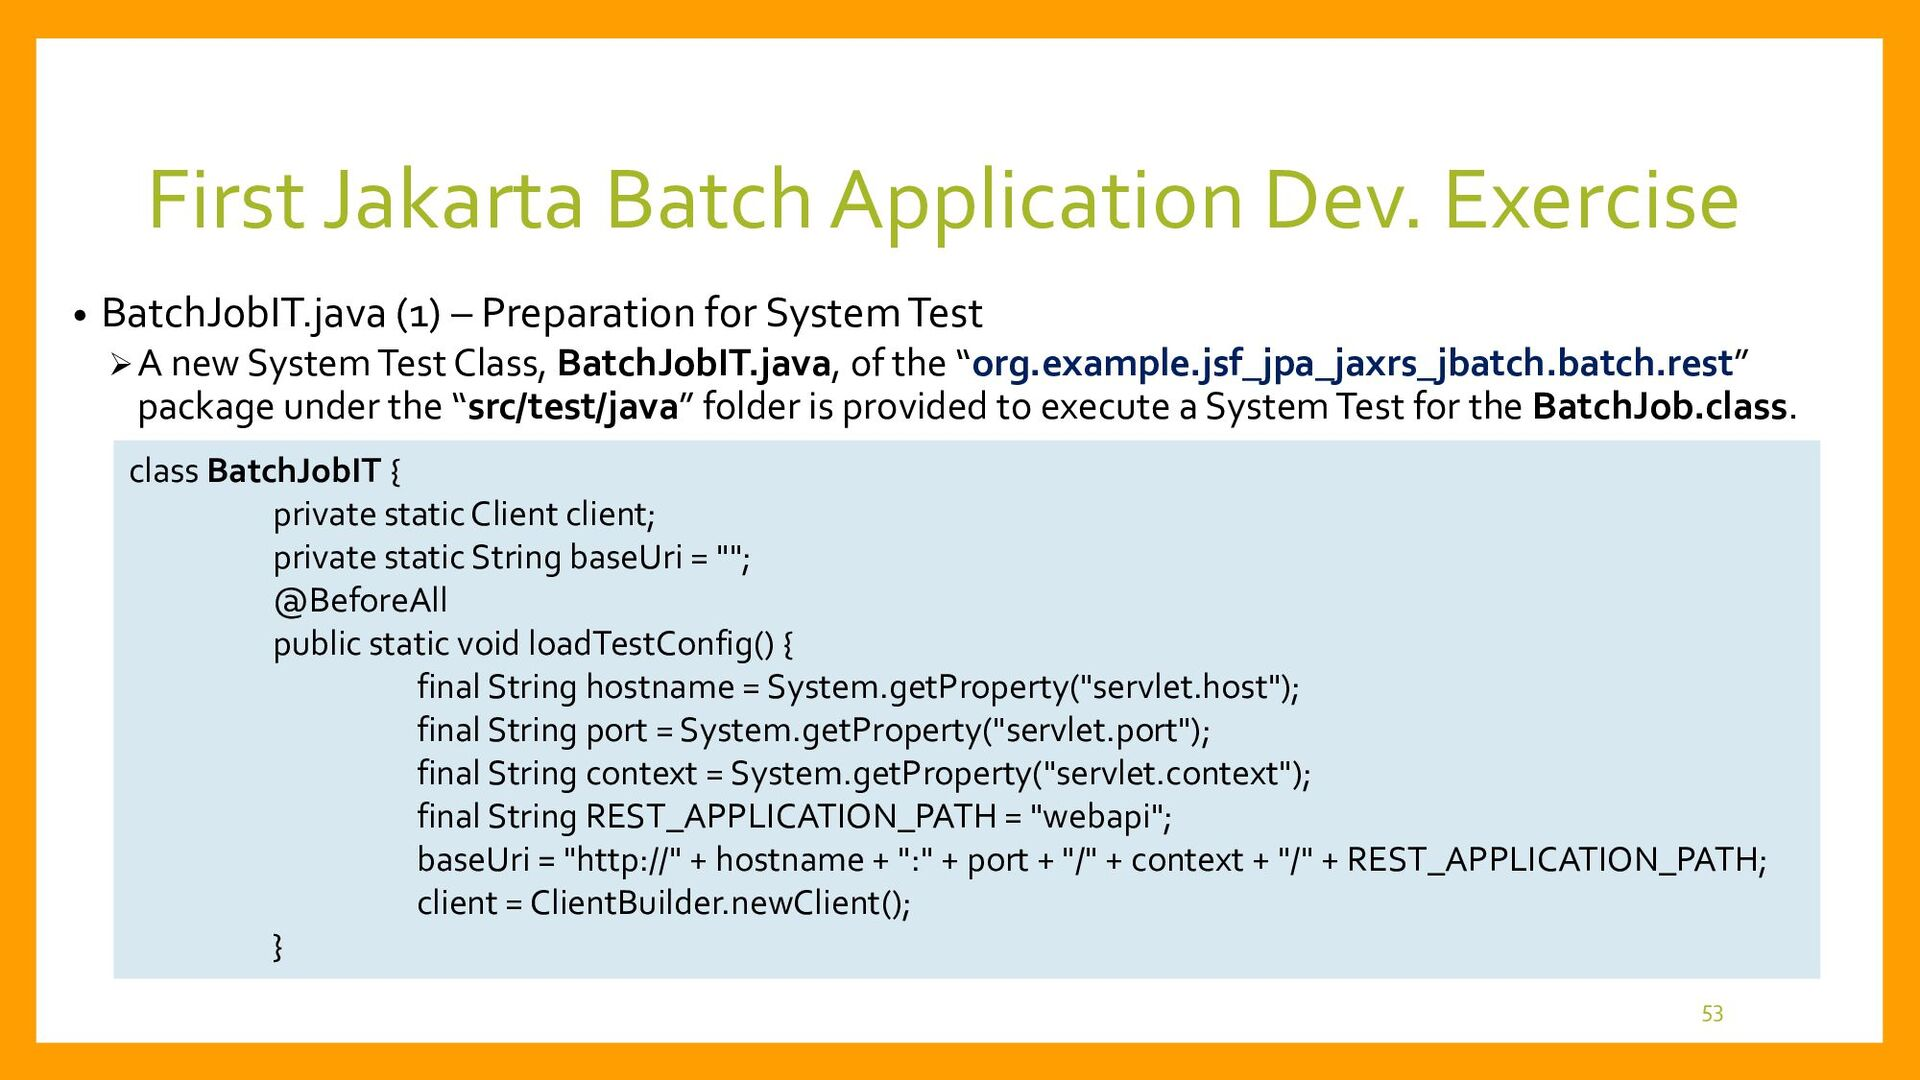 • BatchJobIT.java (2) – Execution of the System...